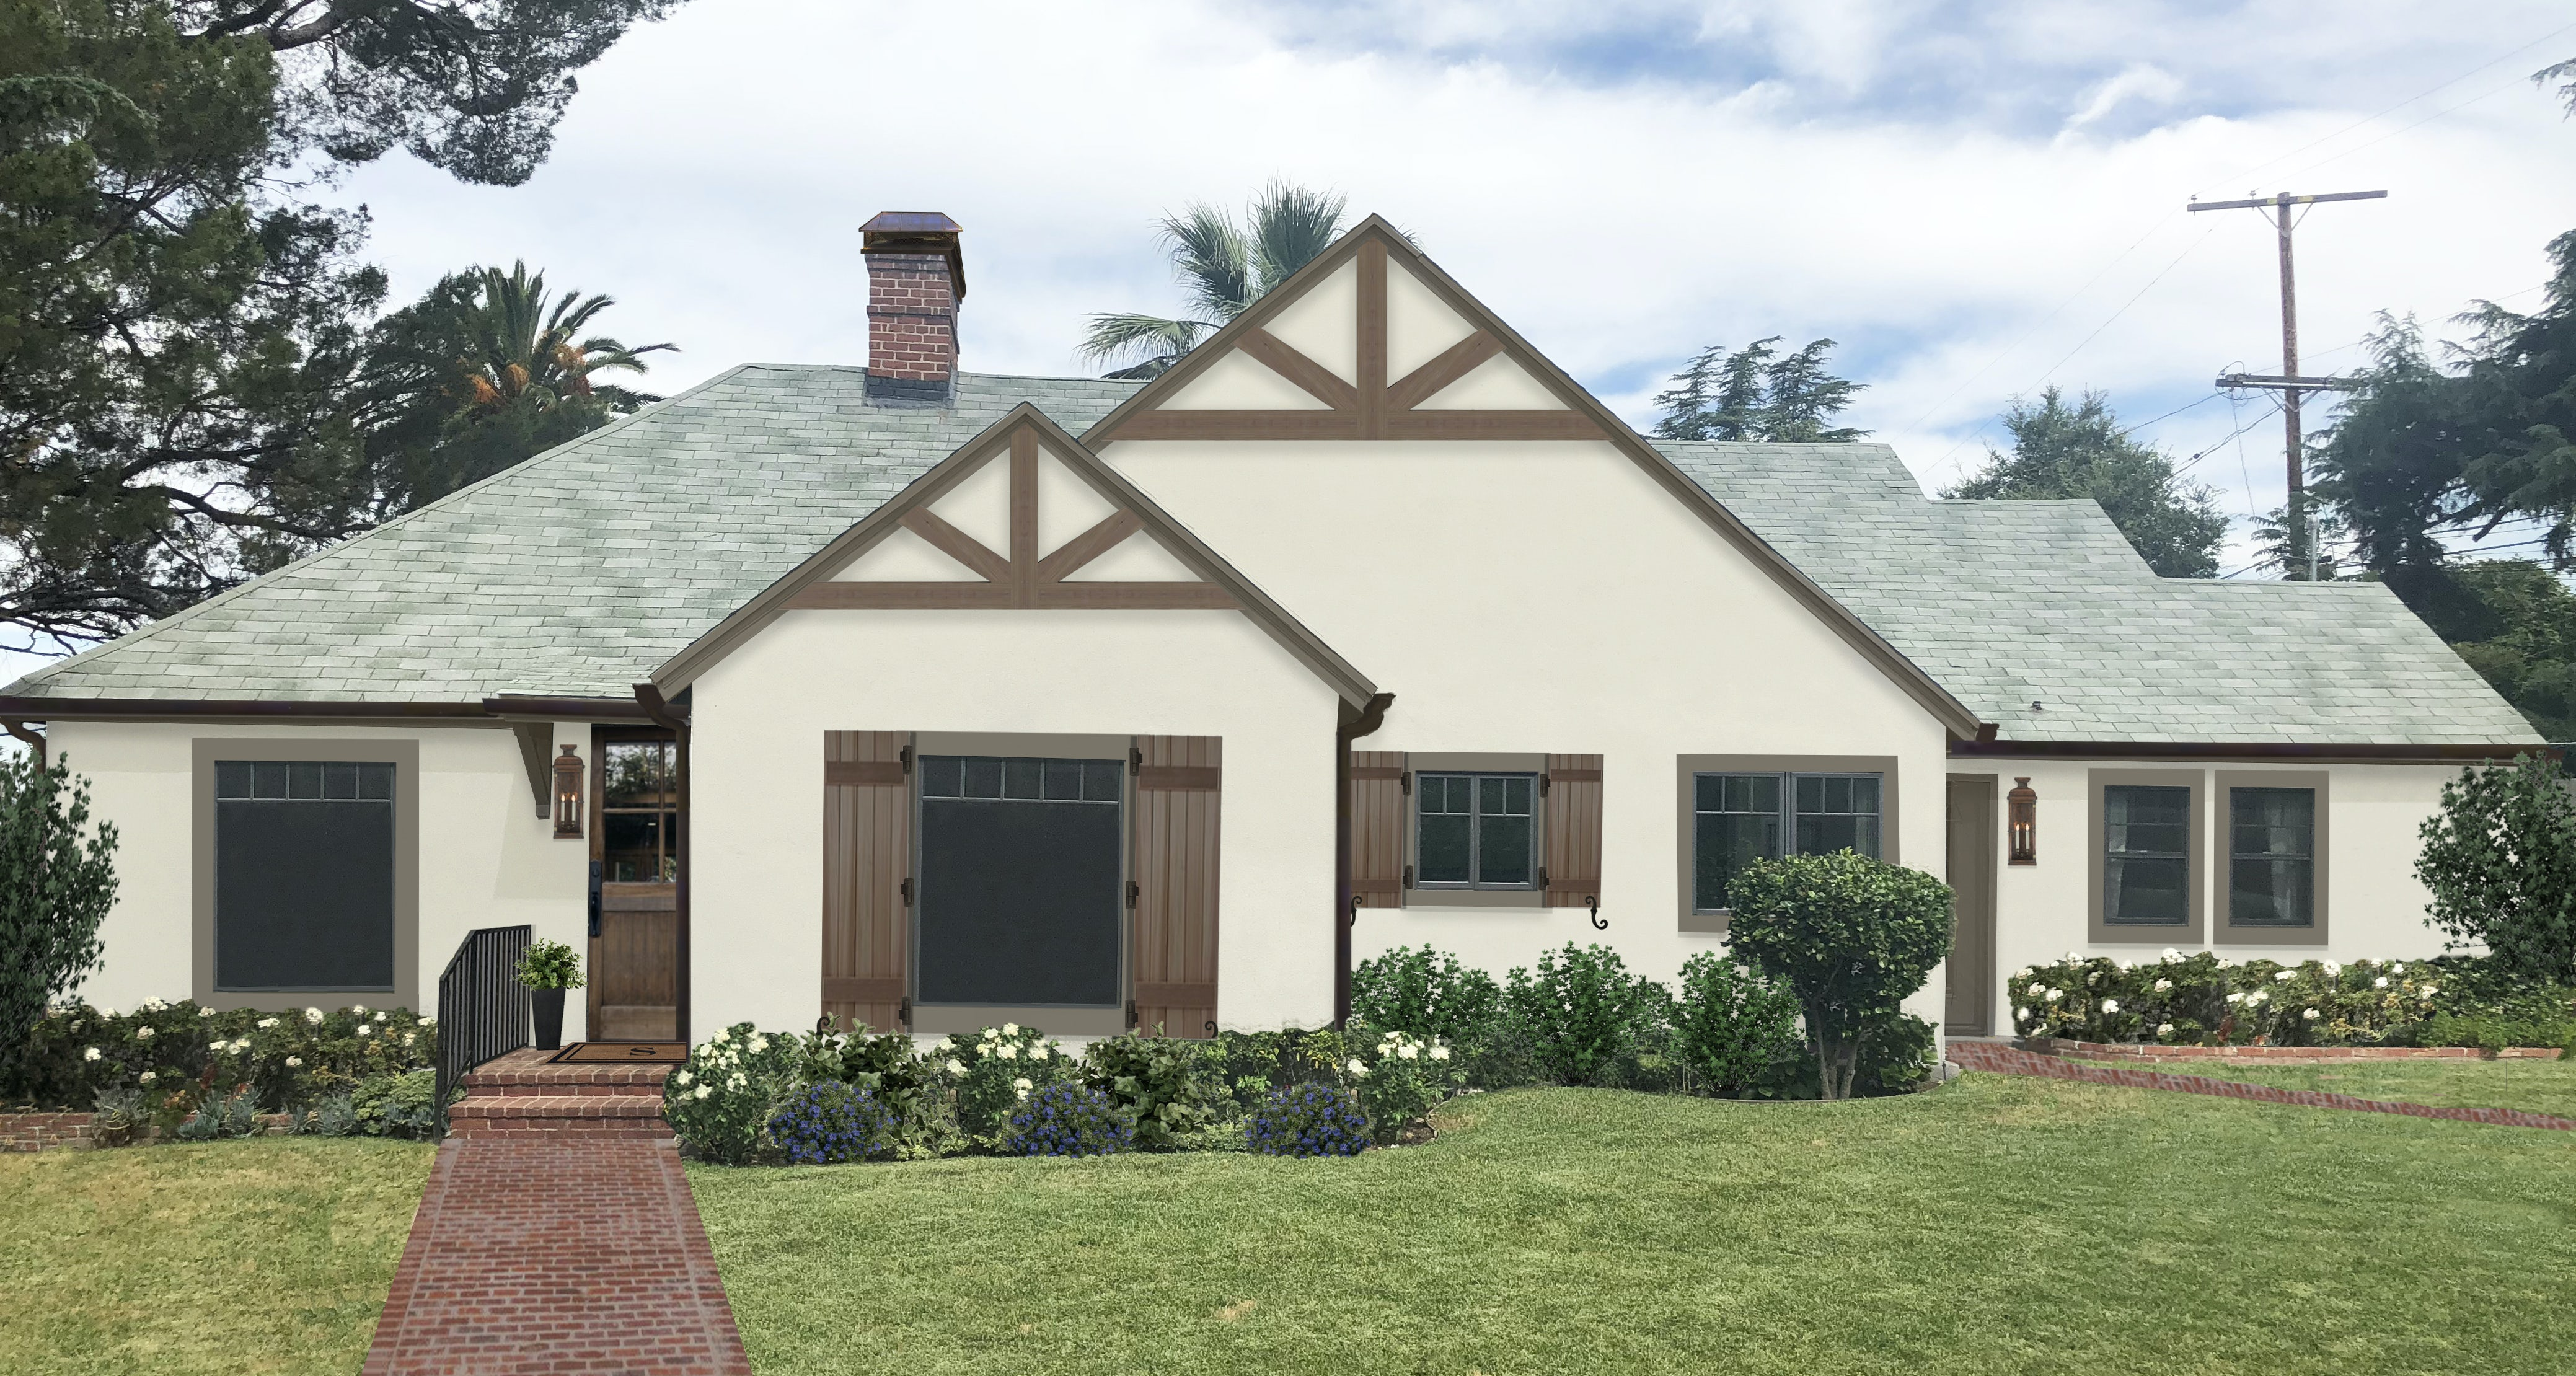 traditional house design with gable accent and shutters